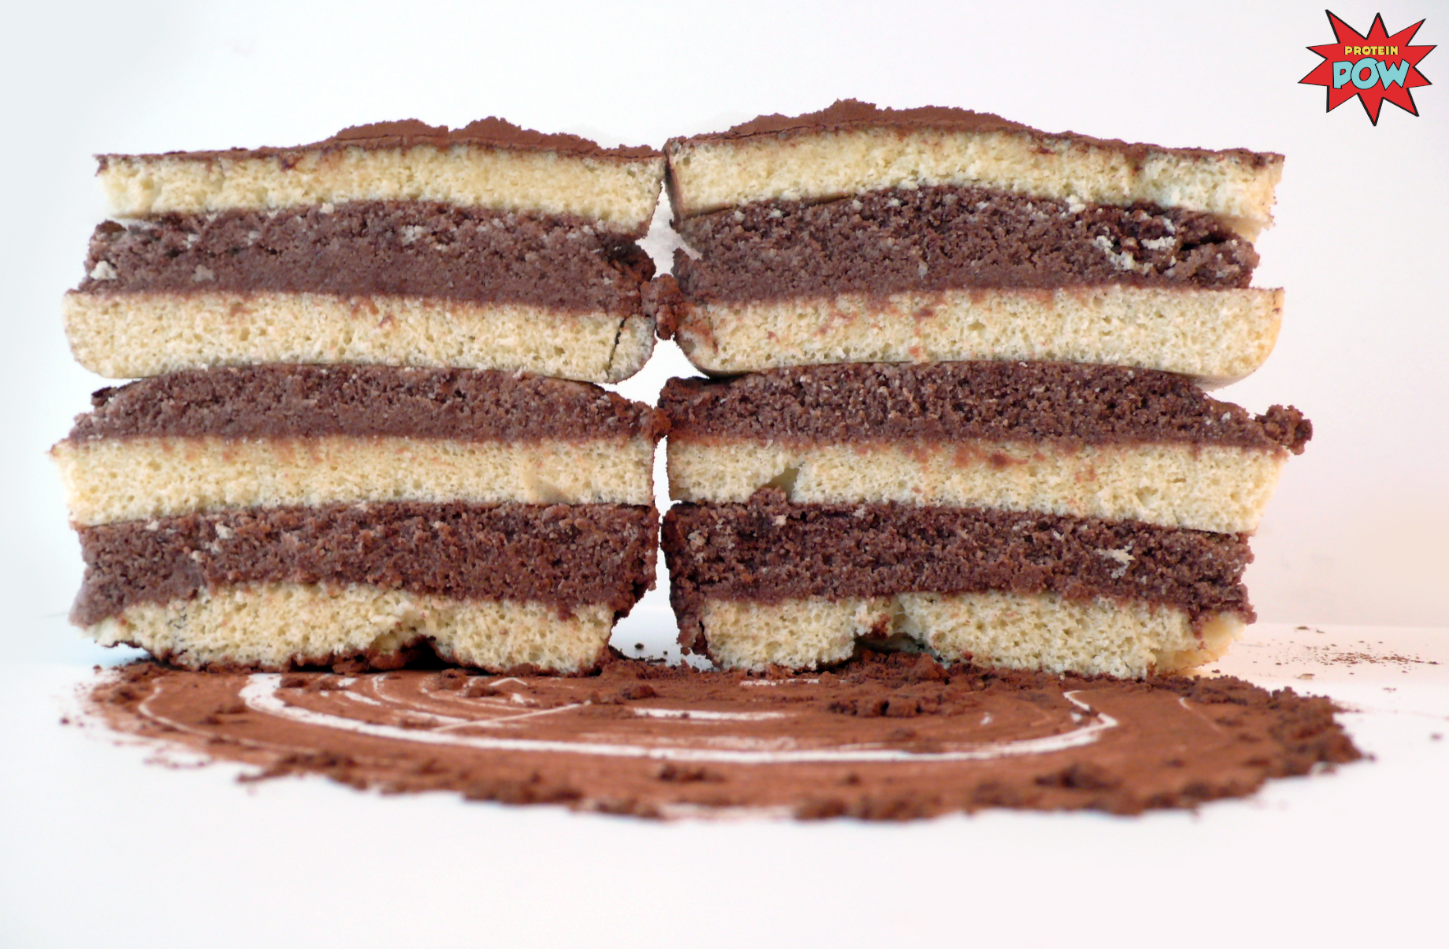 Protein Cake Recipe Low Carb: = PROTEIN POW(D)ER !: A 3 Ingredient Low-Carb Vanilla